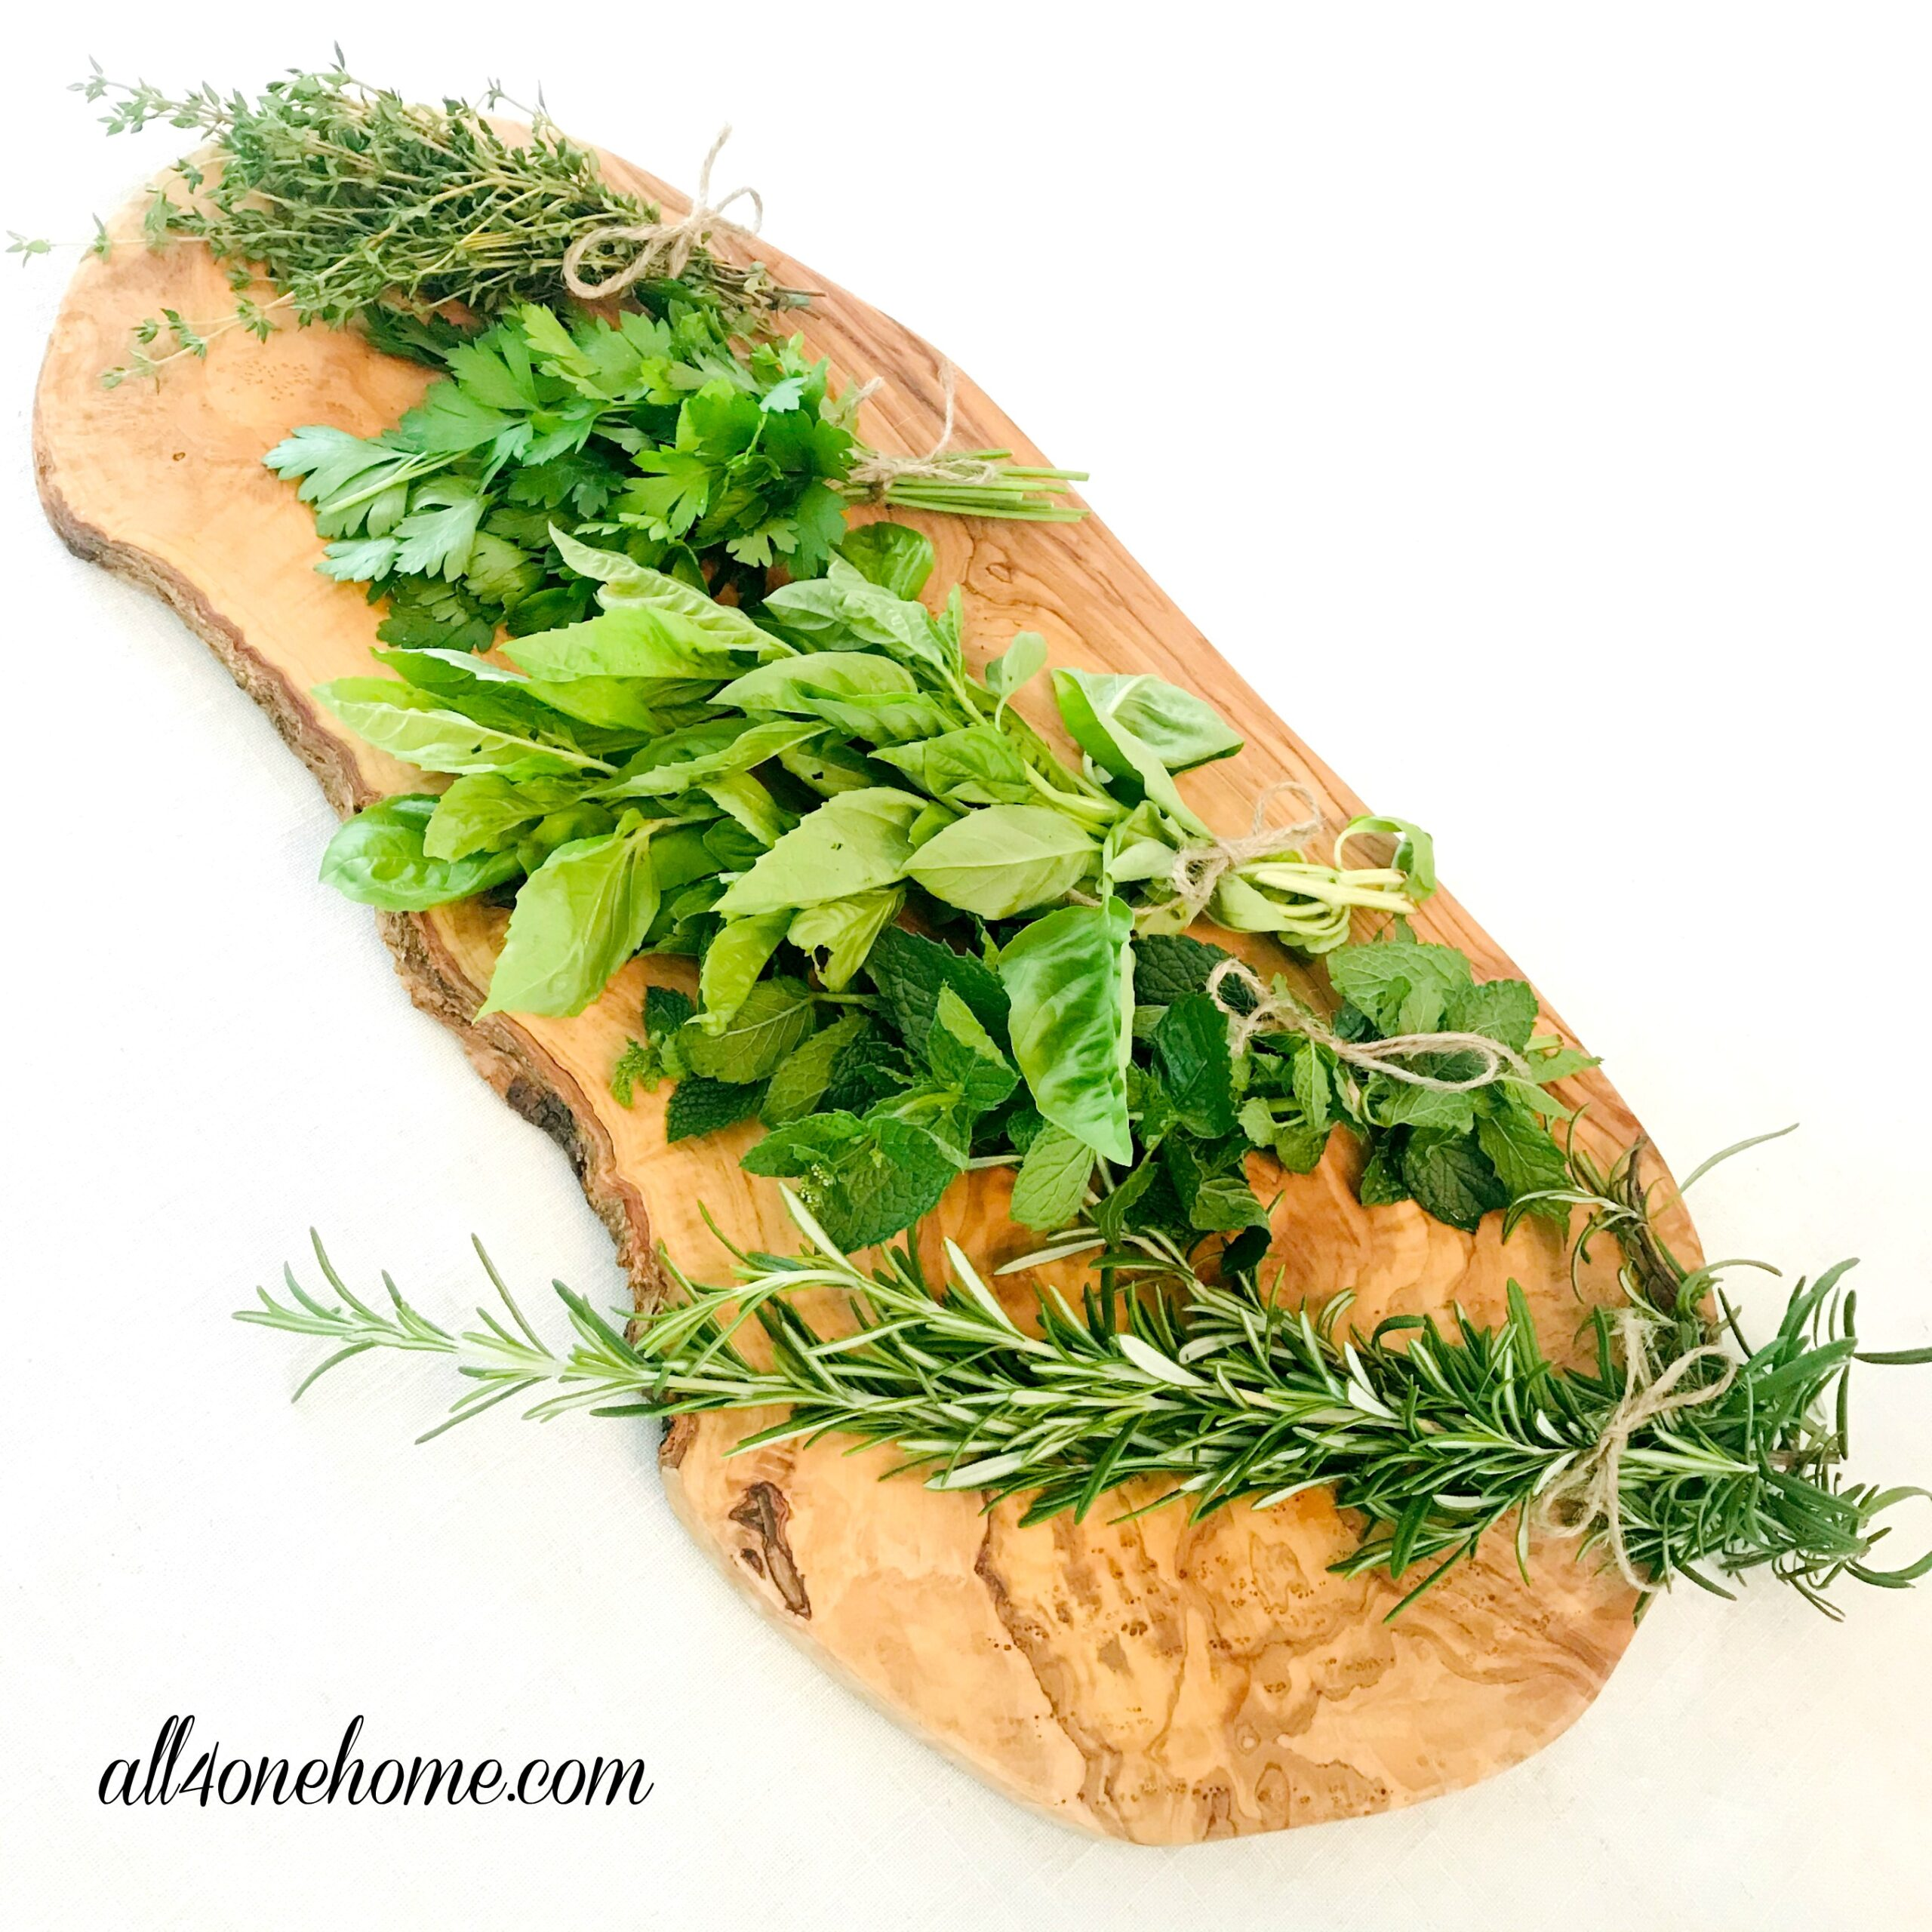 How to air dry herbs